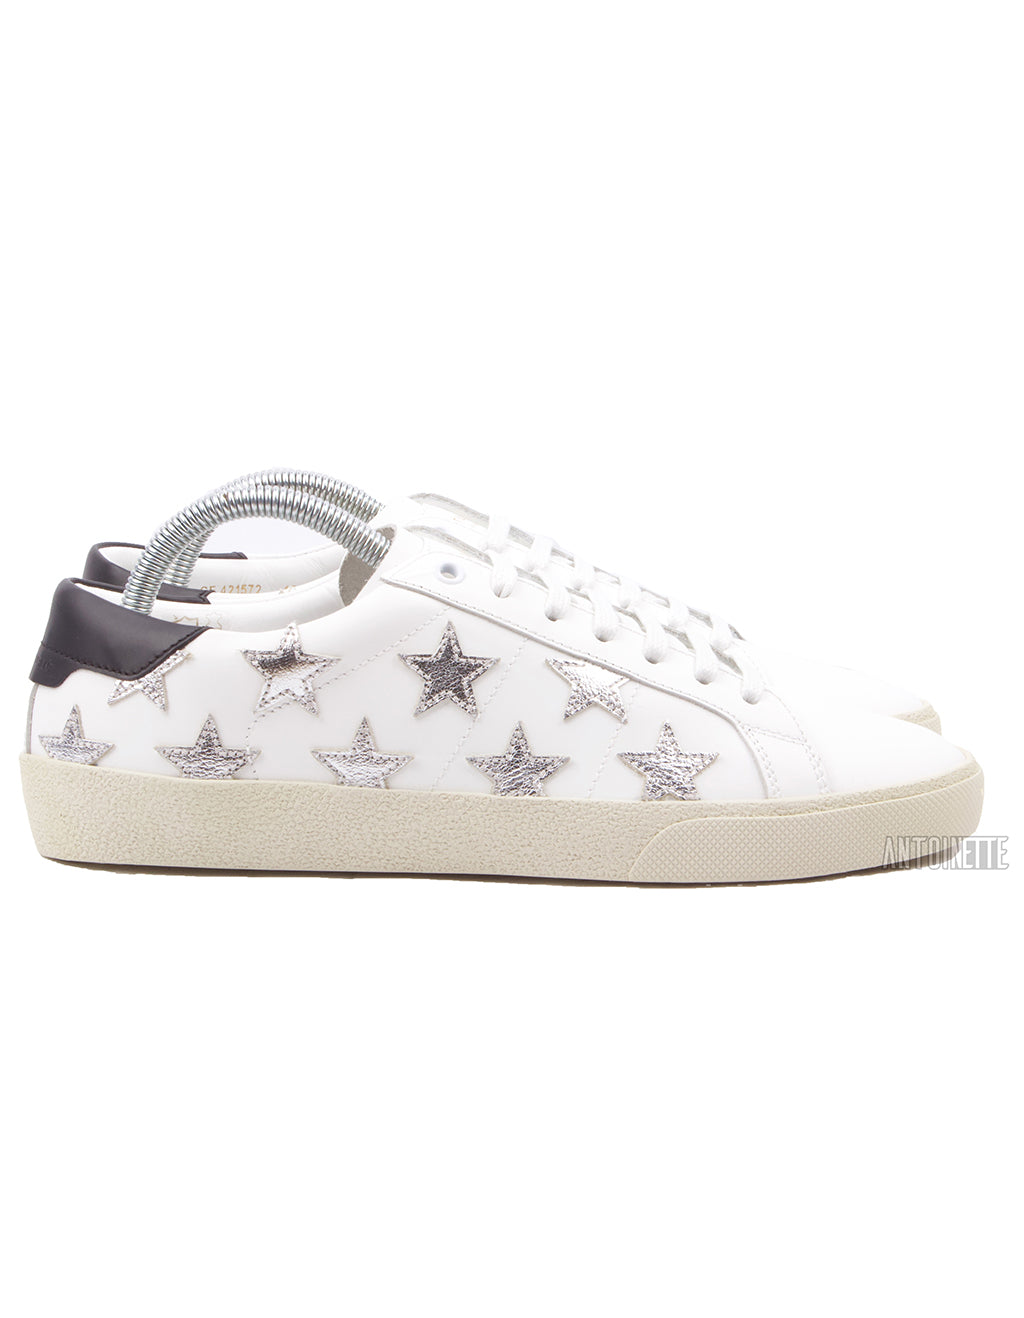 5e182bba78b Saint Laurent White Court Classic SL/06 Metallic Star Leather Sneakers